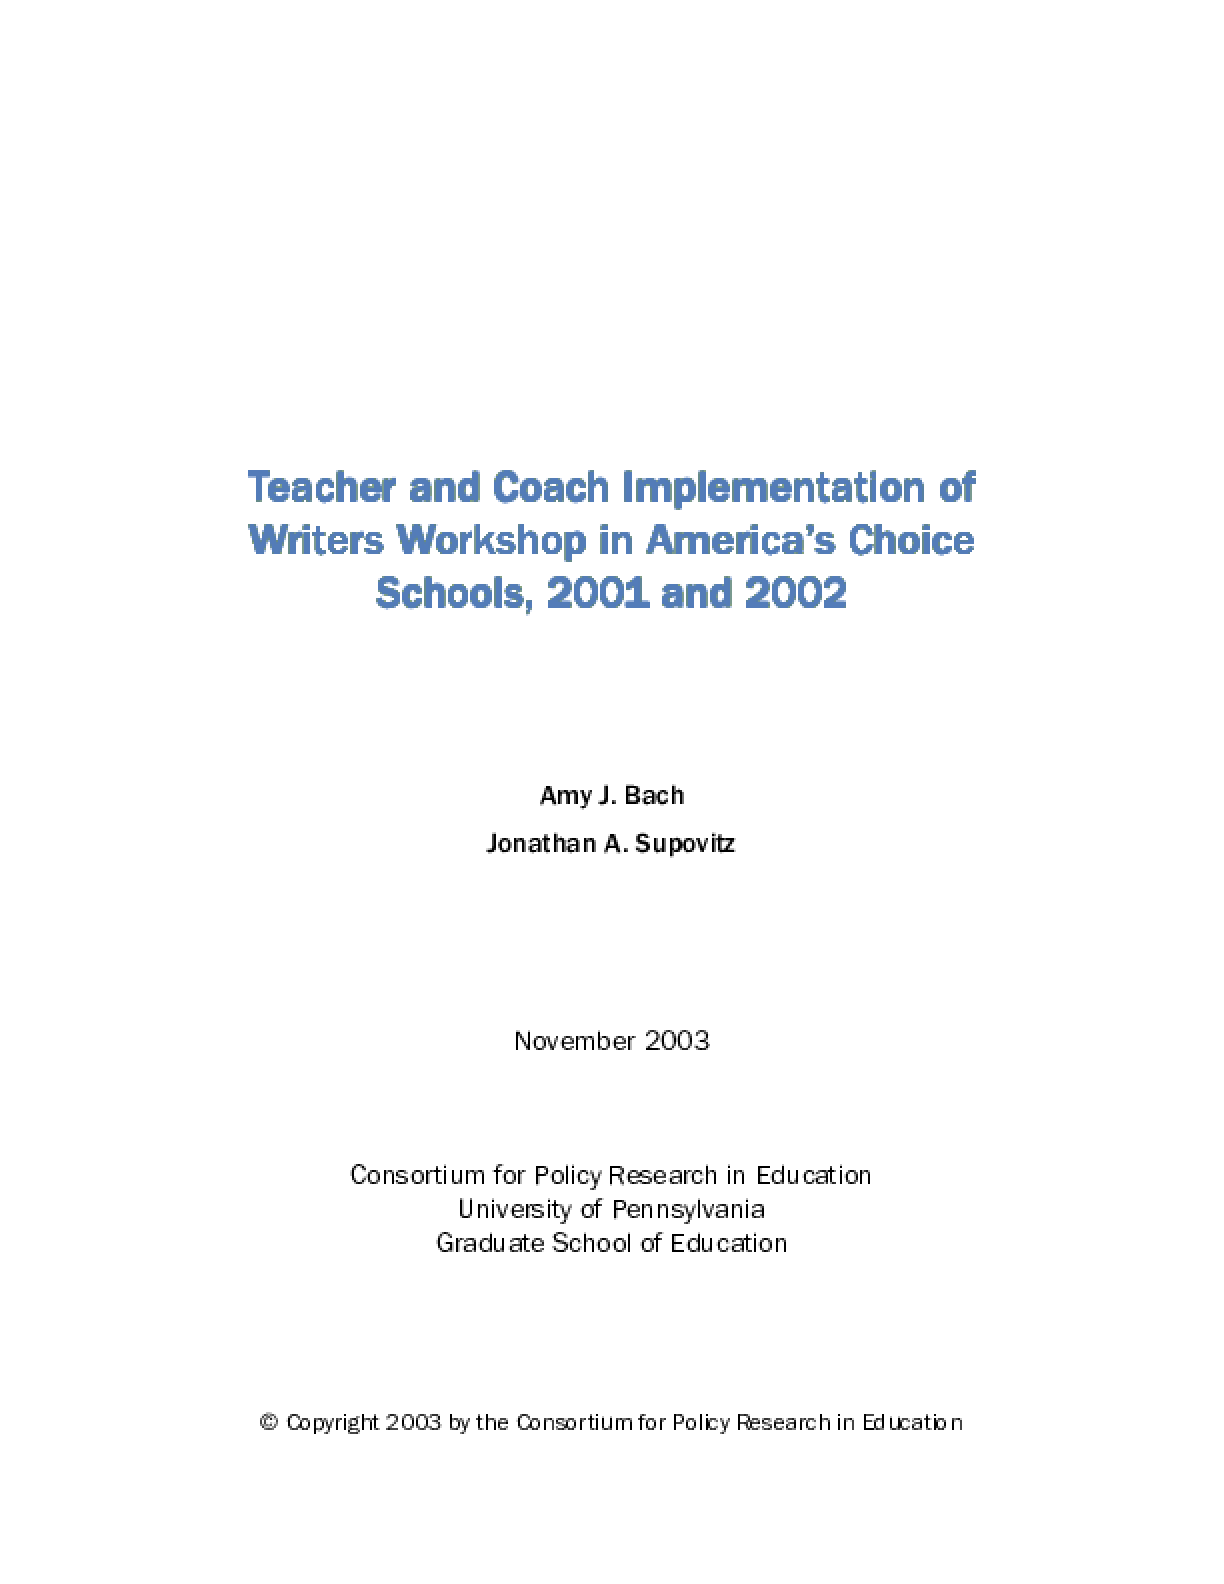 Teacher and Coach Implementation of Writers Workshop in America's Choice Schools, 2001 and 2002